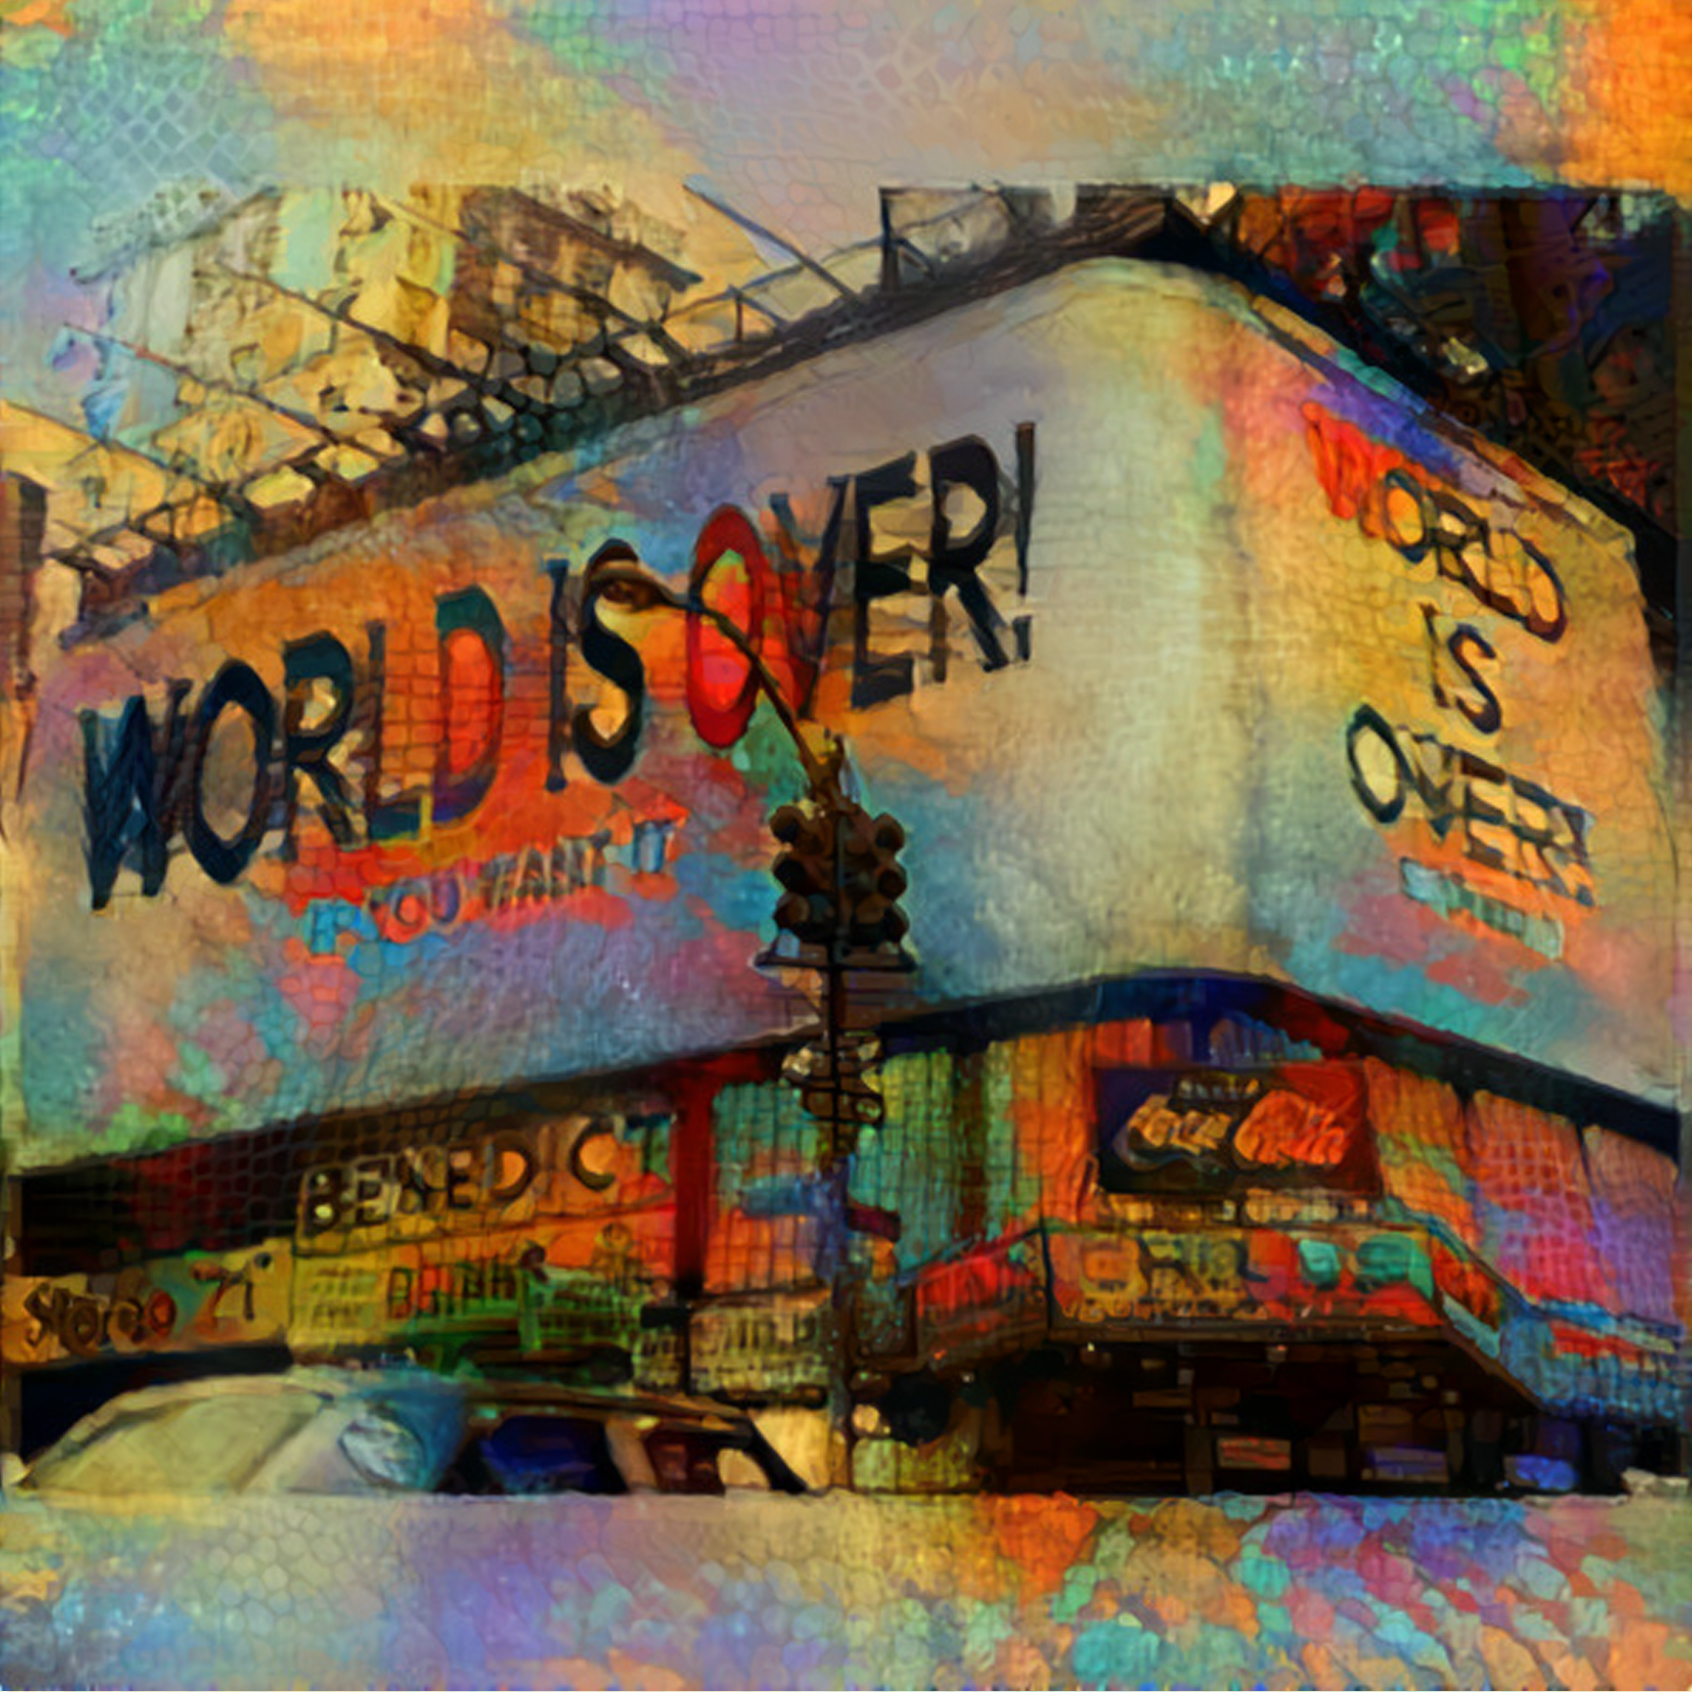 various artist – The World is Over! B-Side